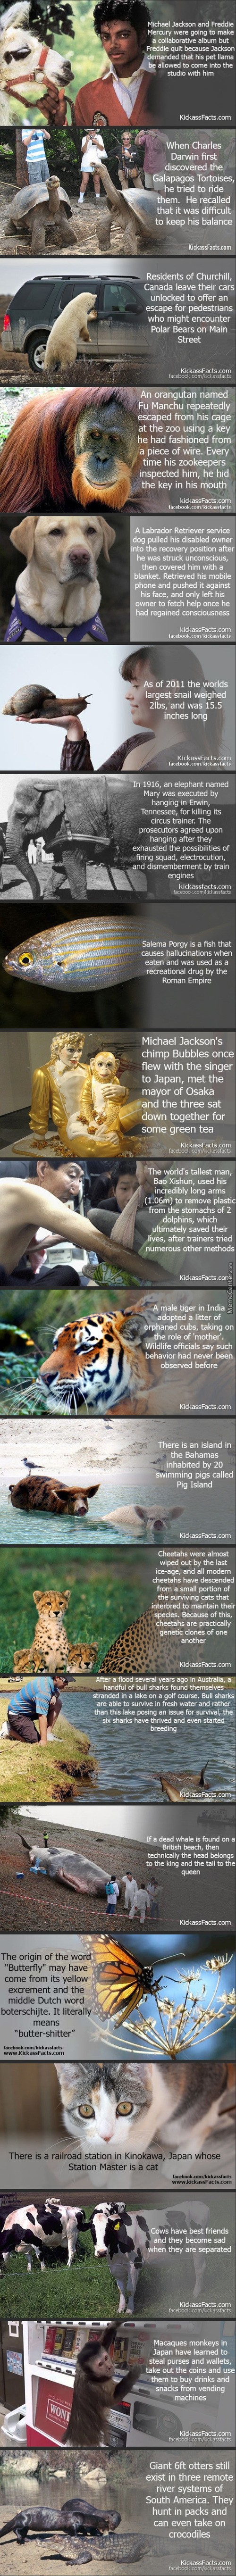 Some Interesting Animal Facts